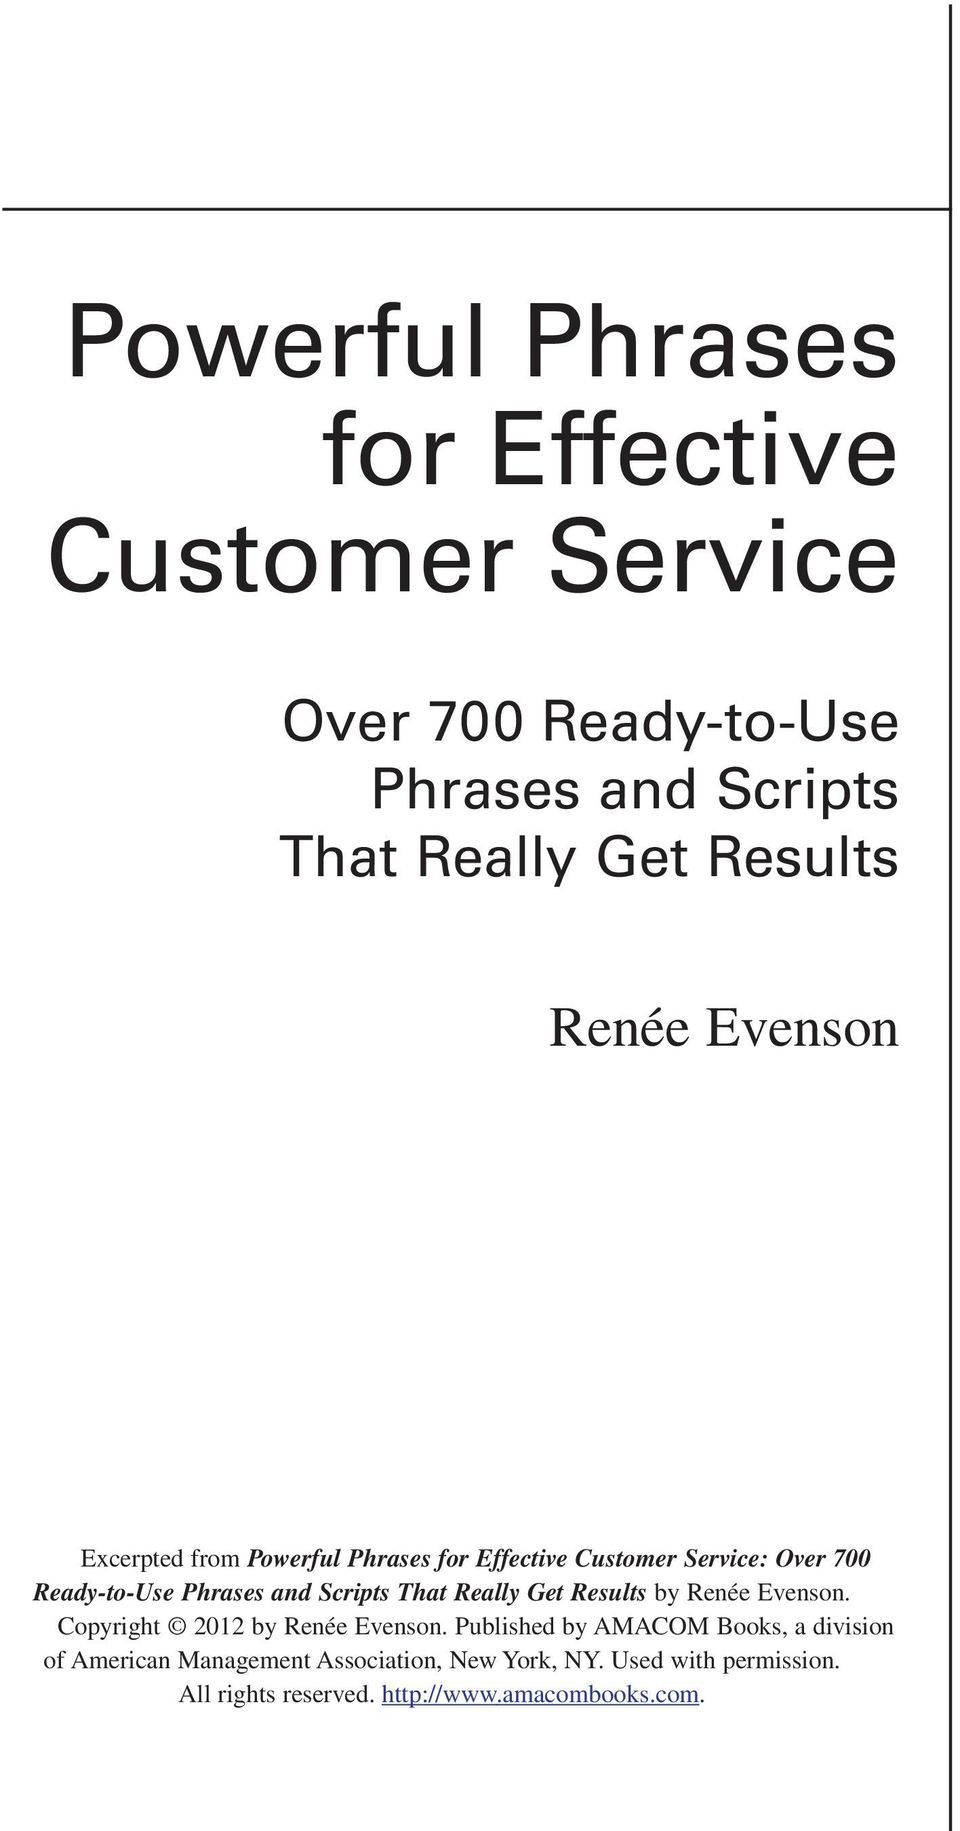 Scripts That Really Get Results by Renée Evenson. Copyright 2012 by Renée Evenson.